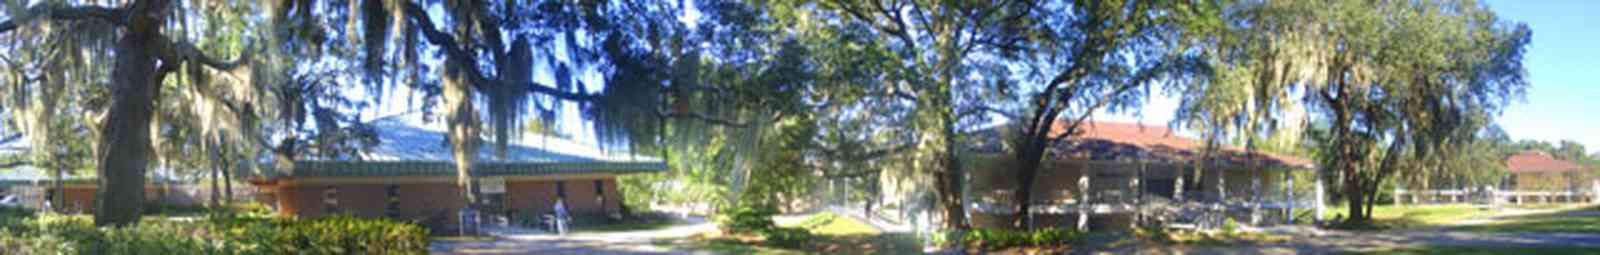 University-Of-West-Florida:-Campus_09.jpg:  classroom buildings, university, campus, students, spanish moss